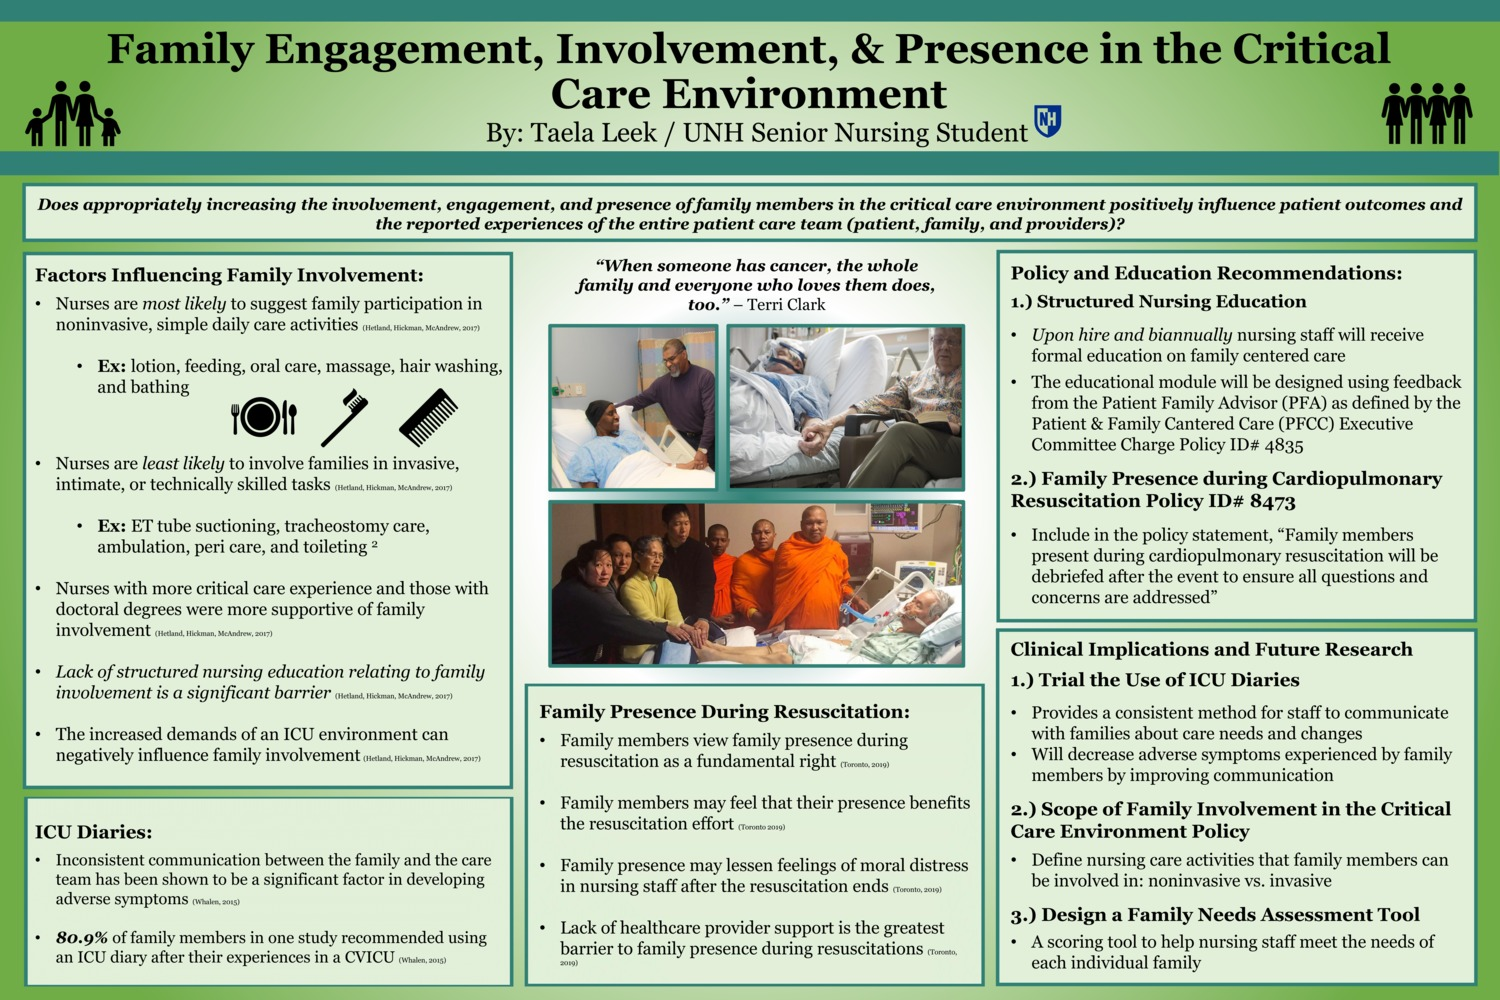 Family Engagement, Involvement, & Presence In The Critical Care Environment by tl1030